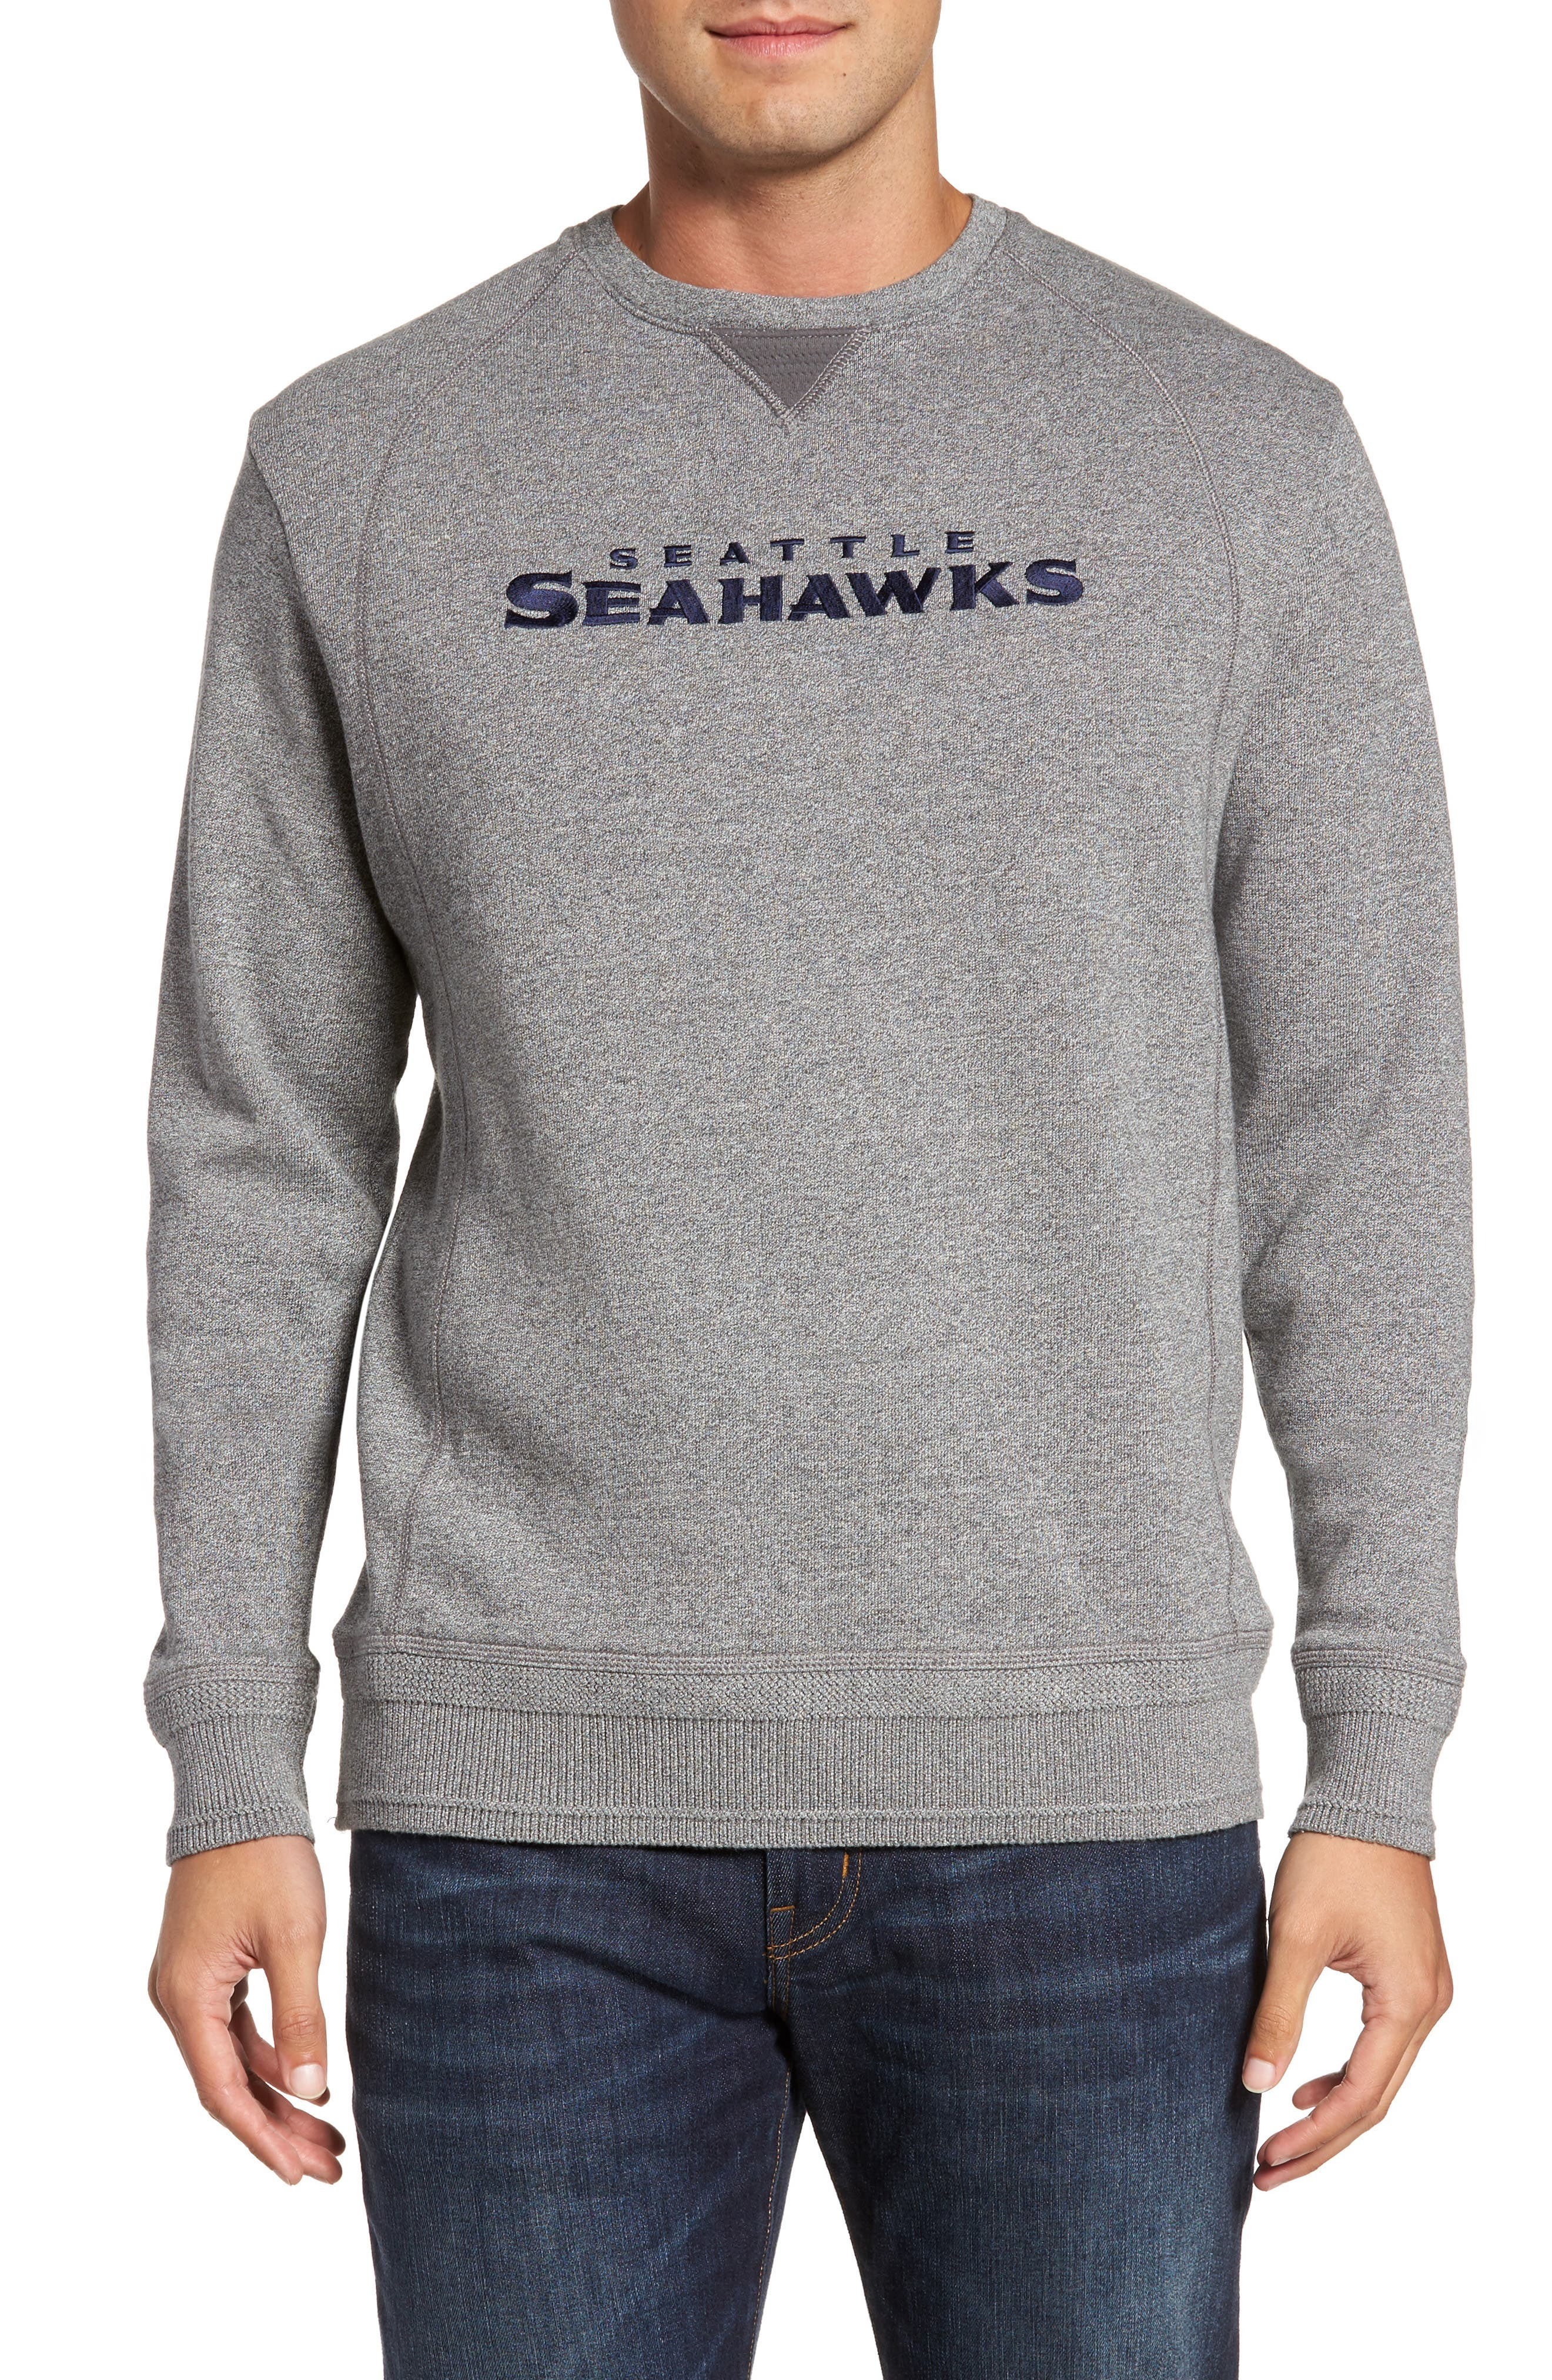 TOMMY BAHAMA NFL Stitch of Liberty Embroidered Crewneck Sweatshirt